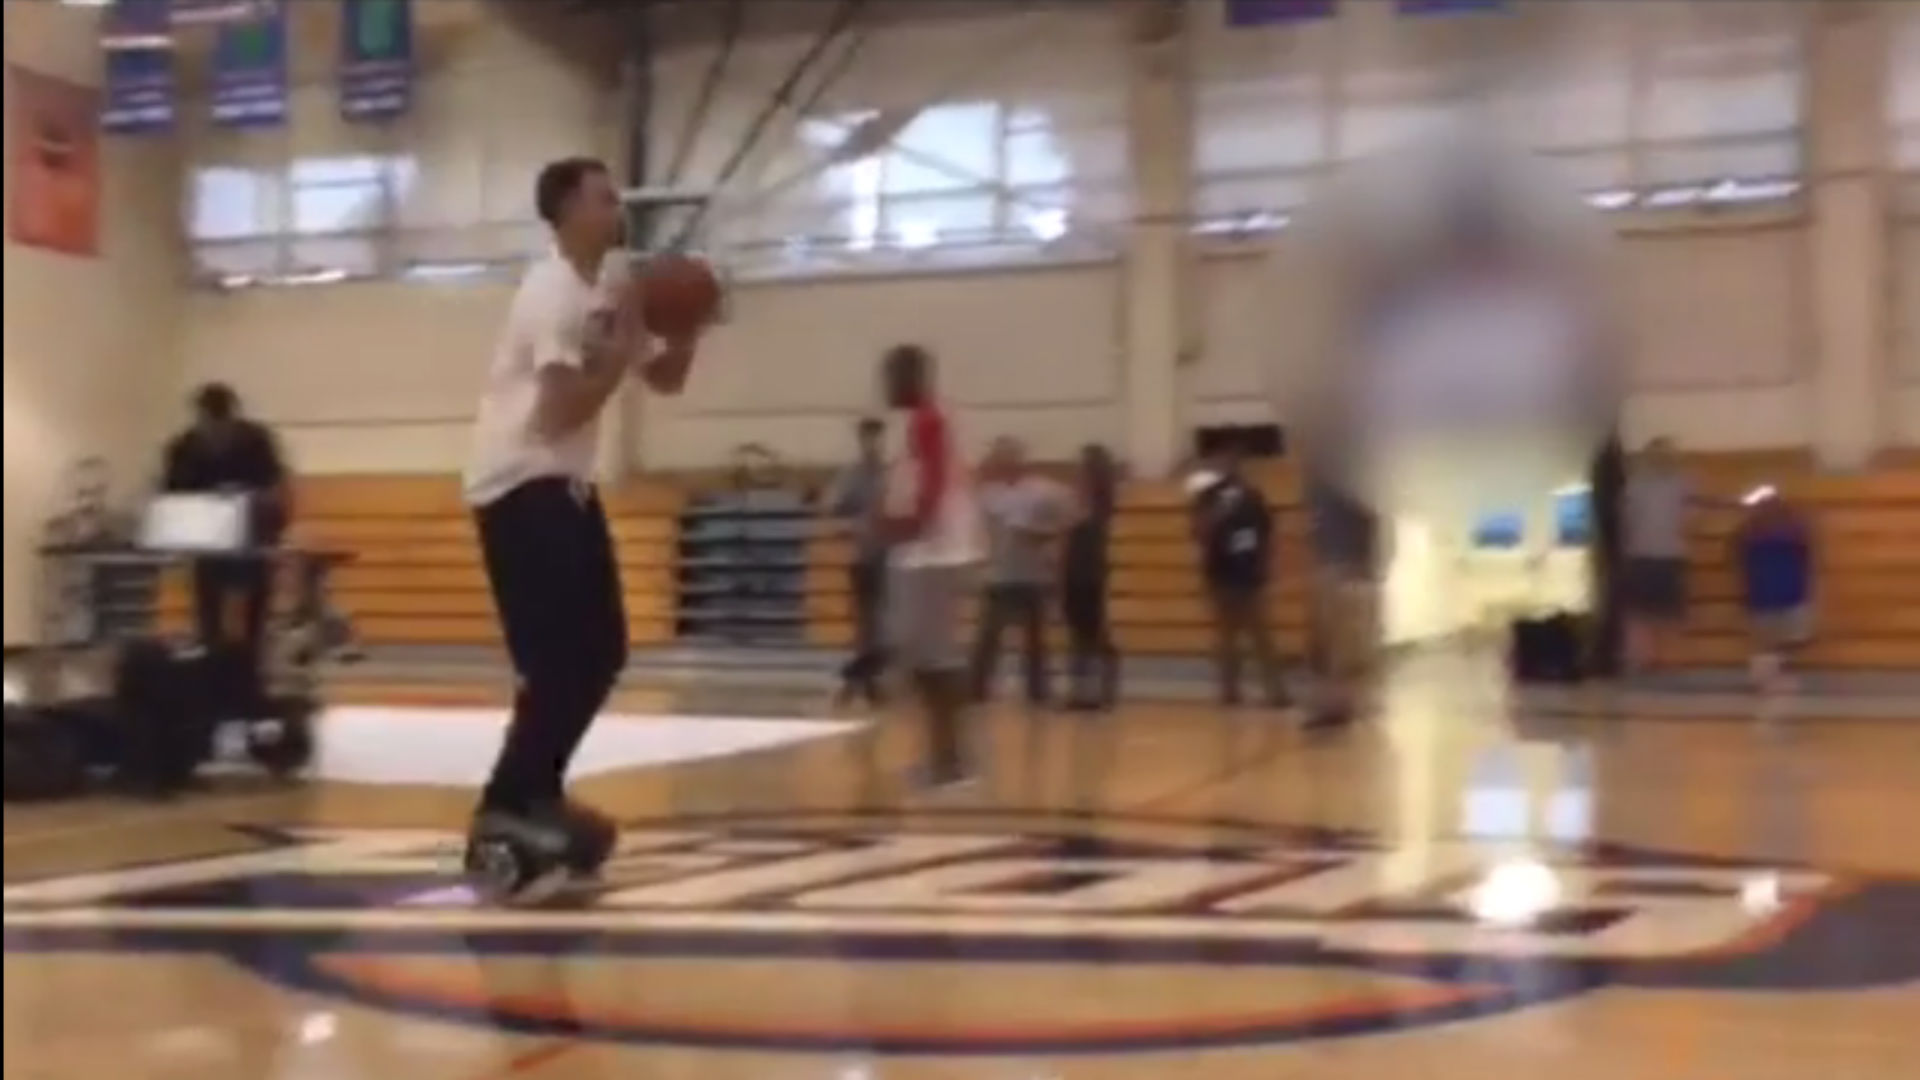 Stephen Curry hit a shot from halfcourt on PhunkeeDuck and made it look easy